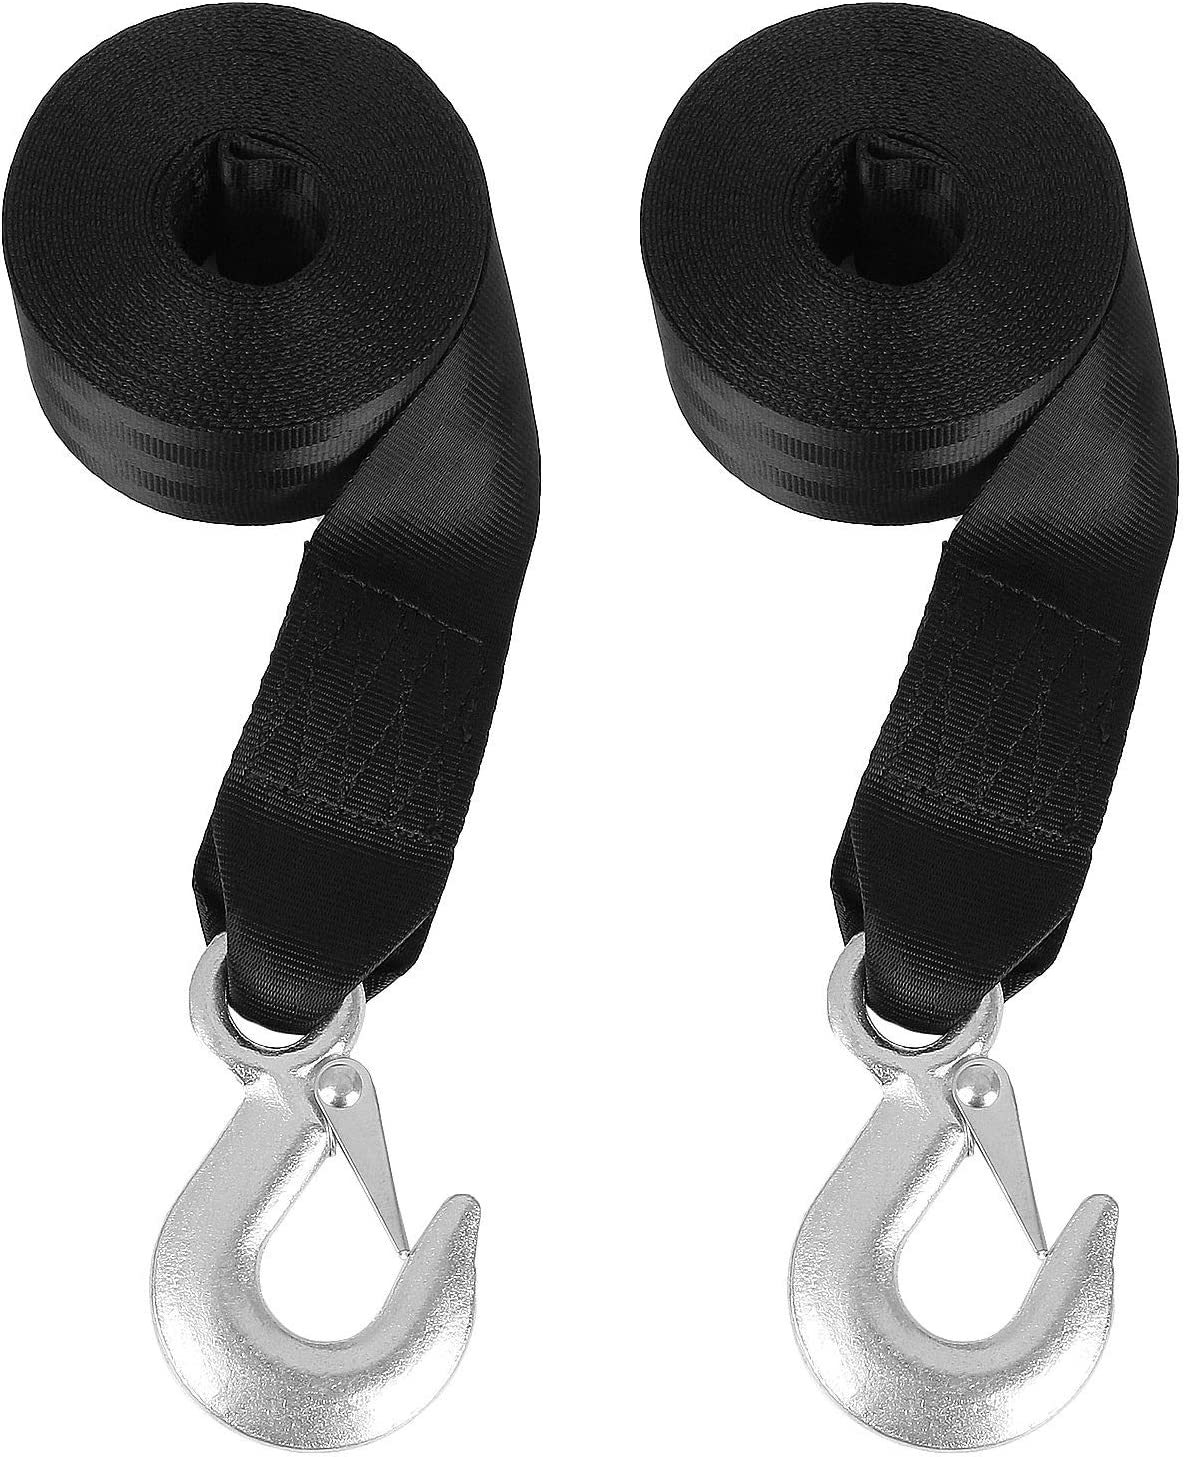 2 x 20 Fishing Jet Ski,Towing Replacement Securing Tie Down Marine Break Strength 6600lbs #NA OrdLive Boat Winch Strap,Heavy Duty Tow Straps with Hook and Loop End for Boat